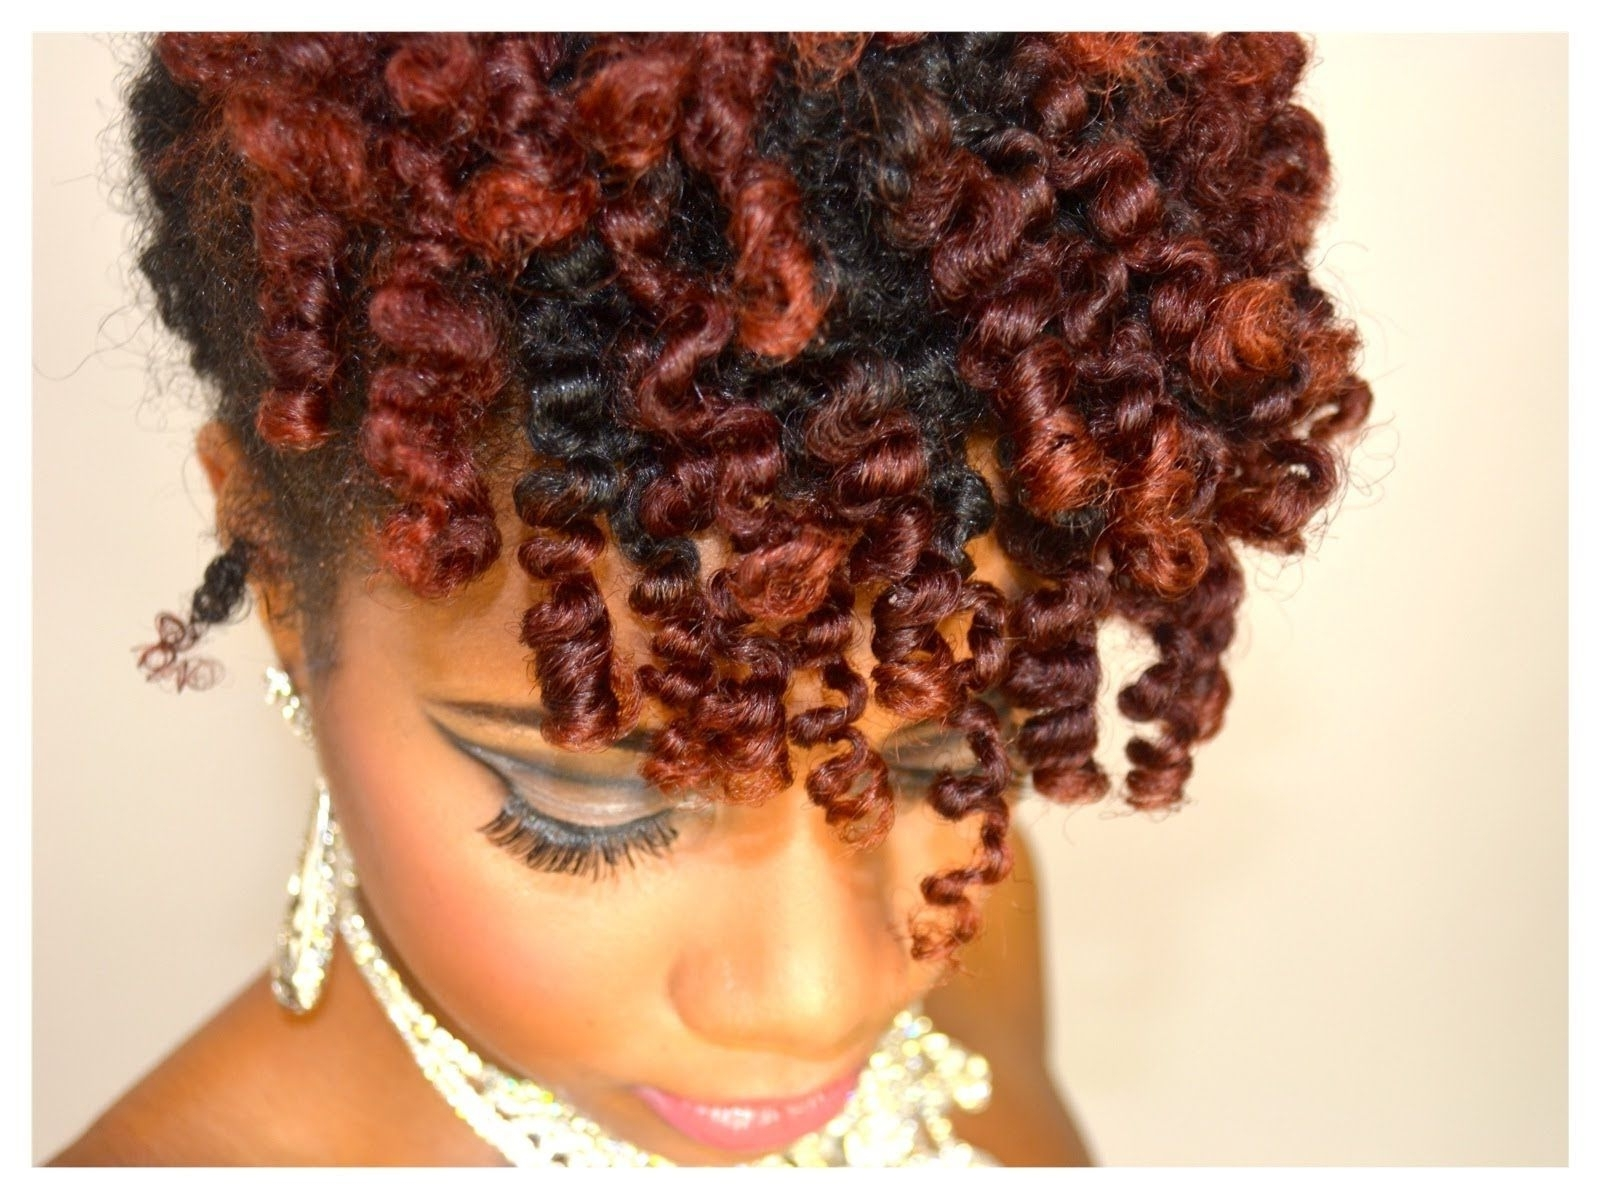 Homecoming Hair Style Bantu Knot Out Updo Hair Tutorial (+Playlist Within Knot Twist Updo Hairstyles (View 11 of 15)